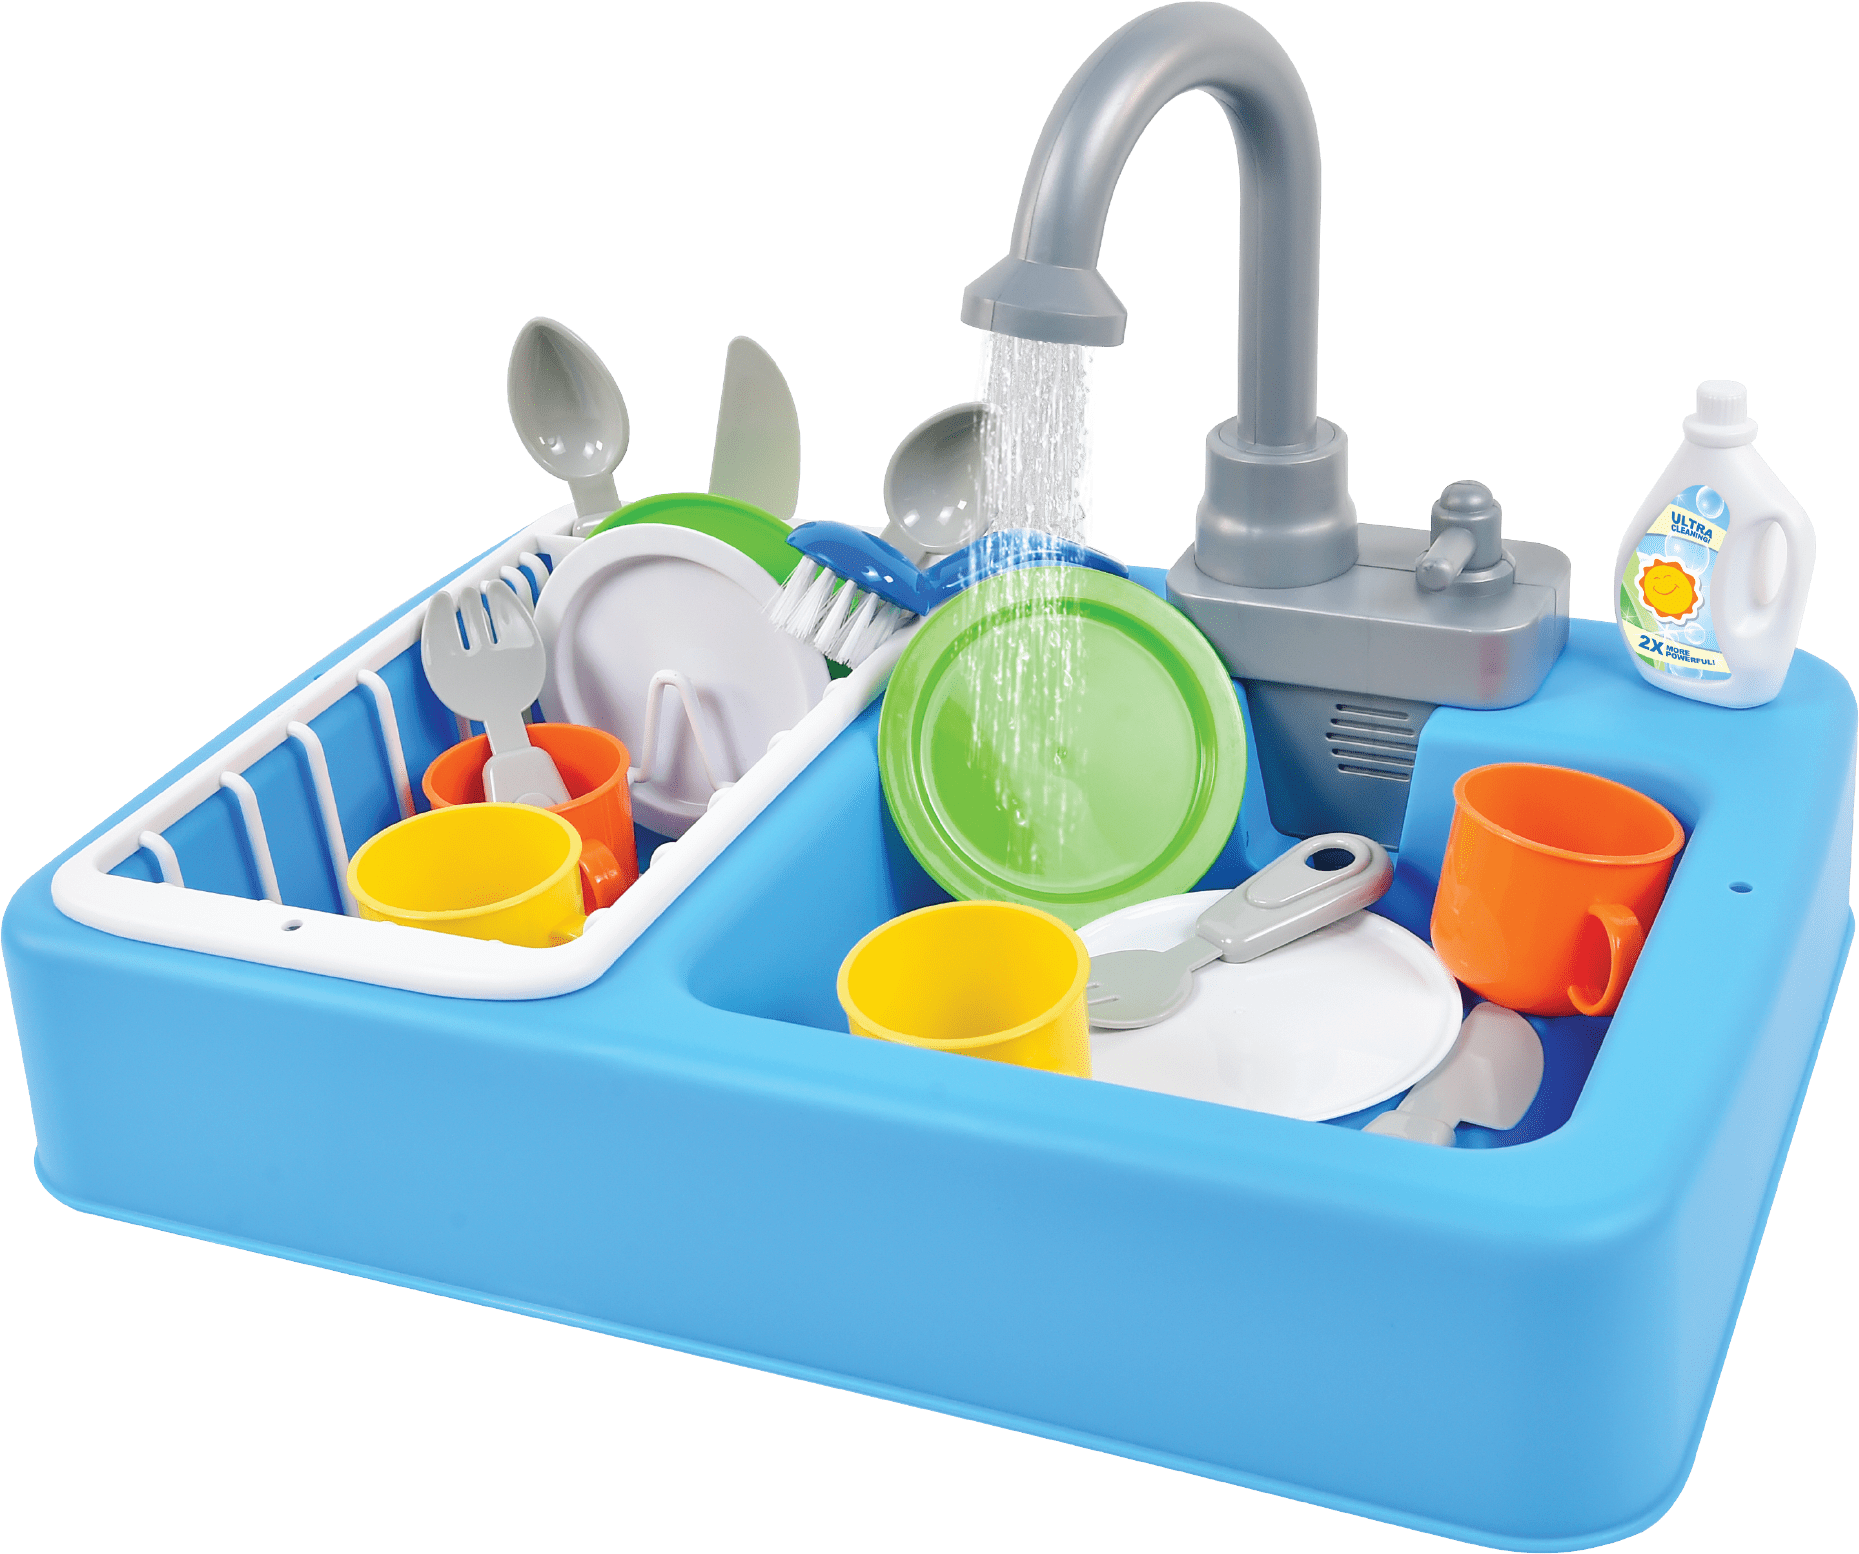 Sunny Days Entertainment Toy Kitchen Sink For Kids With Real Running Water Walmart Com Walmart Com